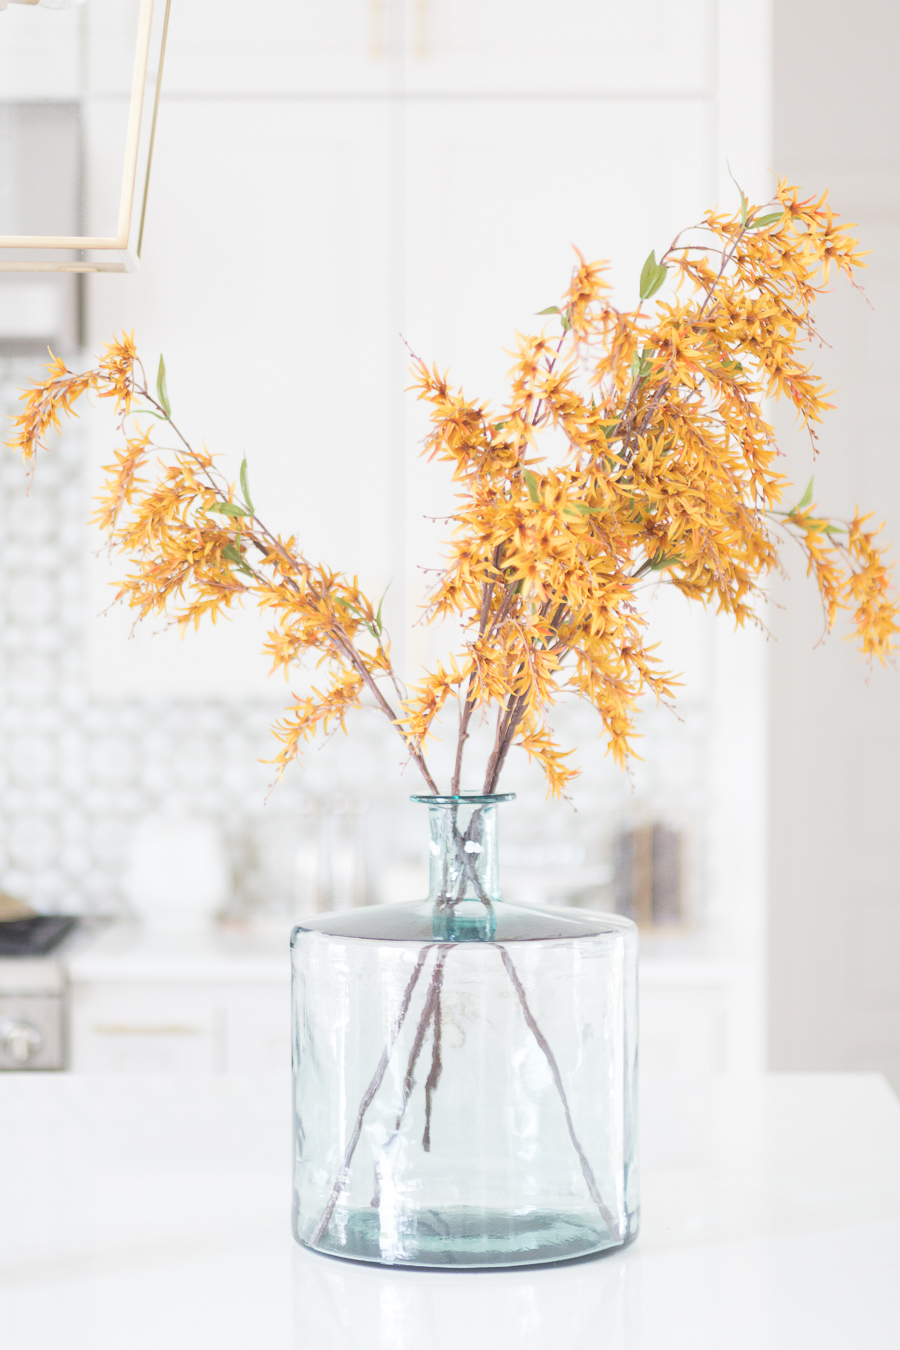 Loveliest Looks of Fall Home Tour Beautiful Fall Home Decor and Fall Fashion Ideas close up photo of yellow faux fall stems in a green vase sitting on a large quartzite waterfall kitchen countertop